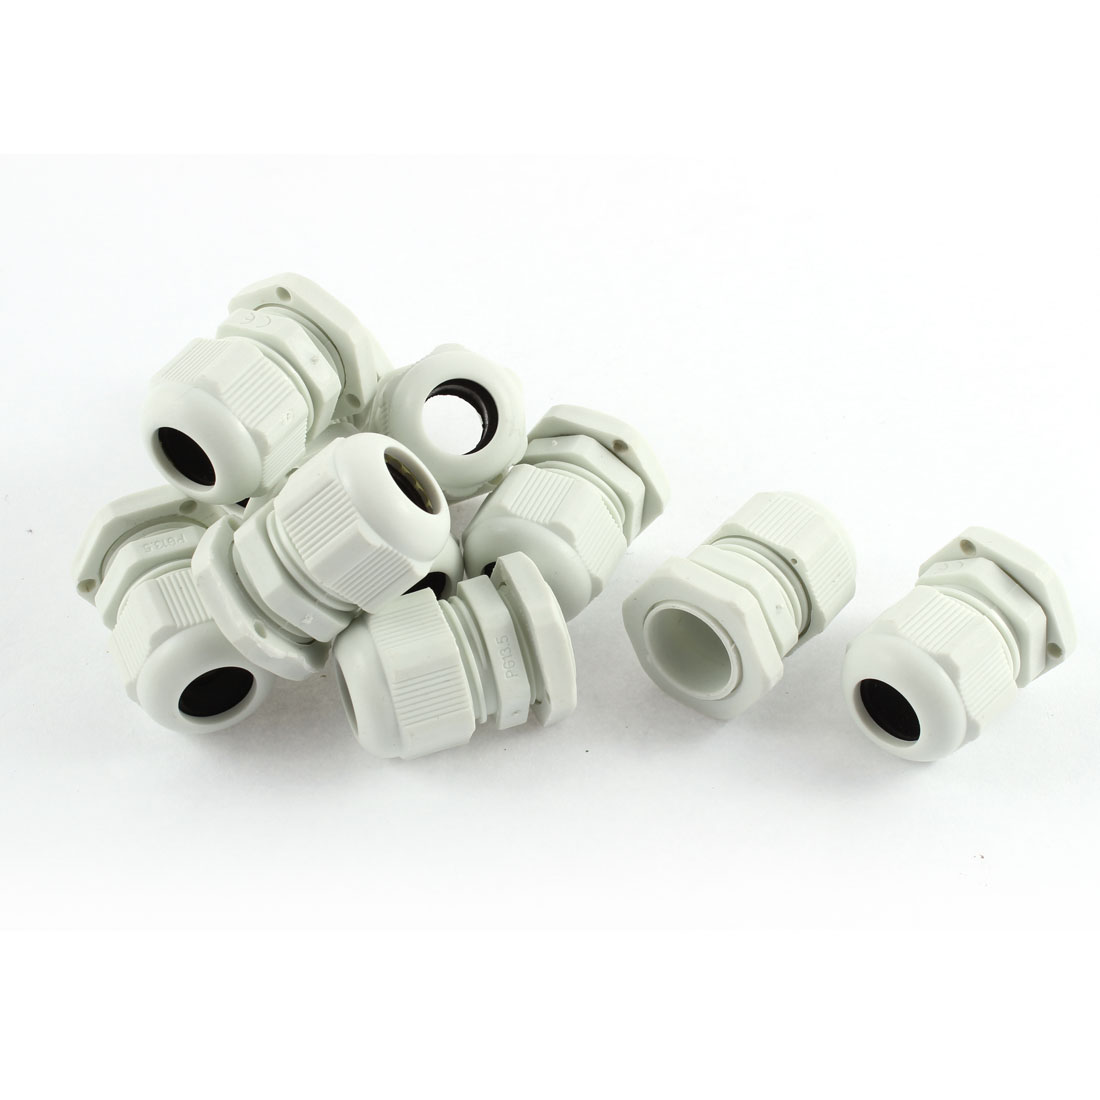 White Plastic PG13.5 6-12mm Wire Connector Waterproof Cable Gland 10pcs